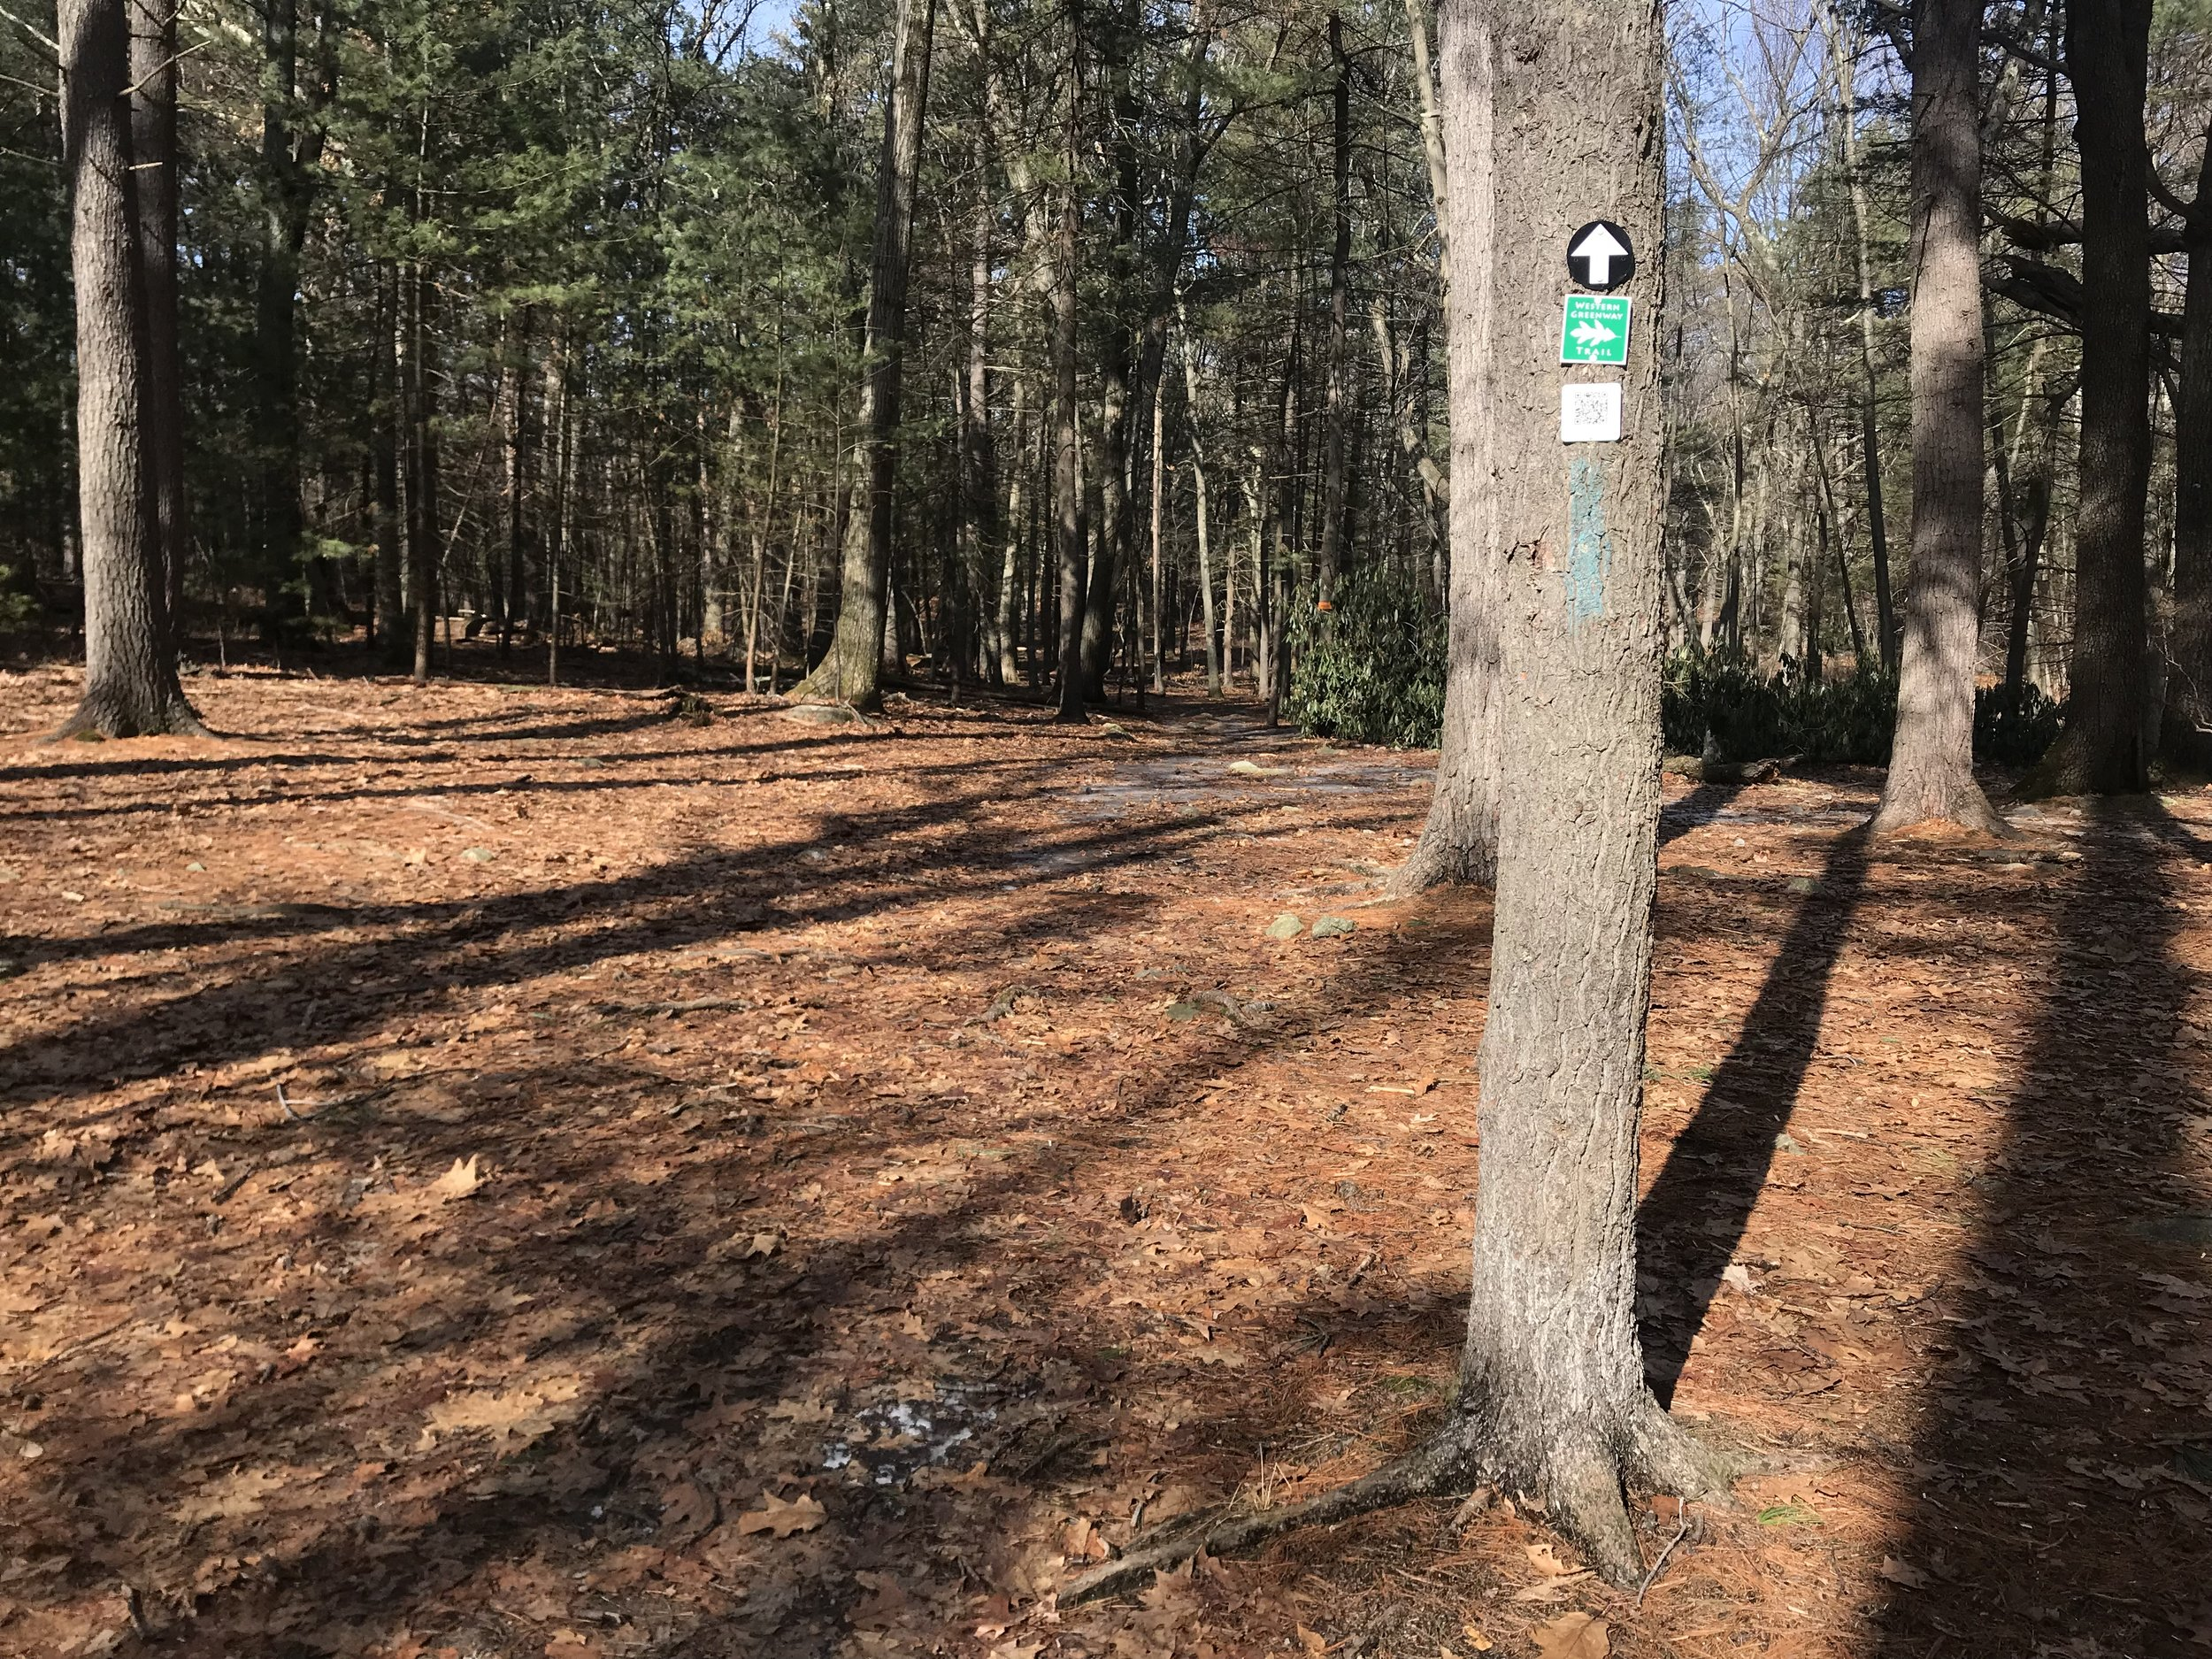 - Hikers on the Western Greenway, a regional trail system, pass through the woods.